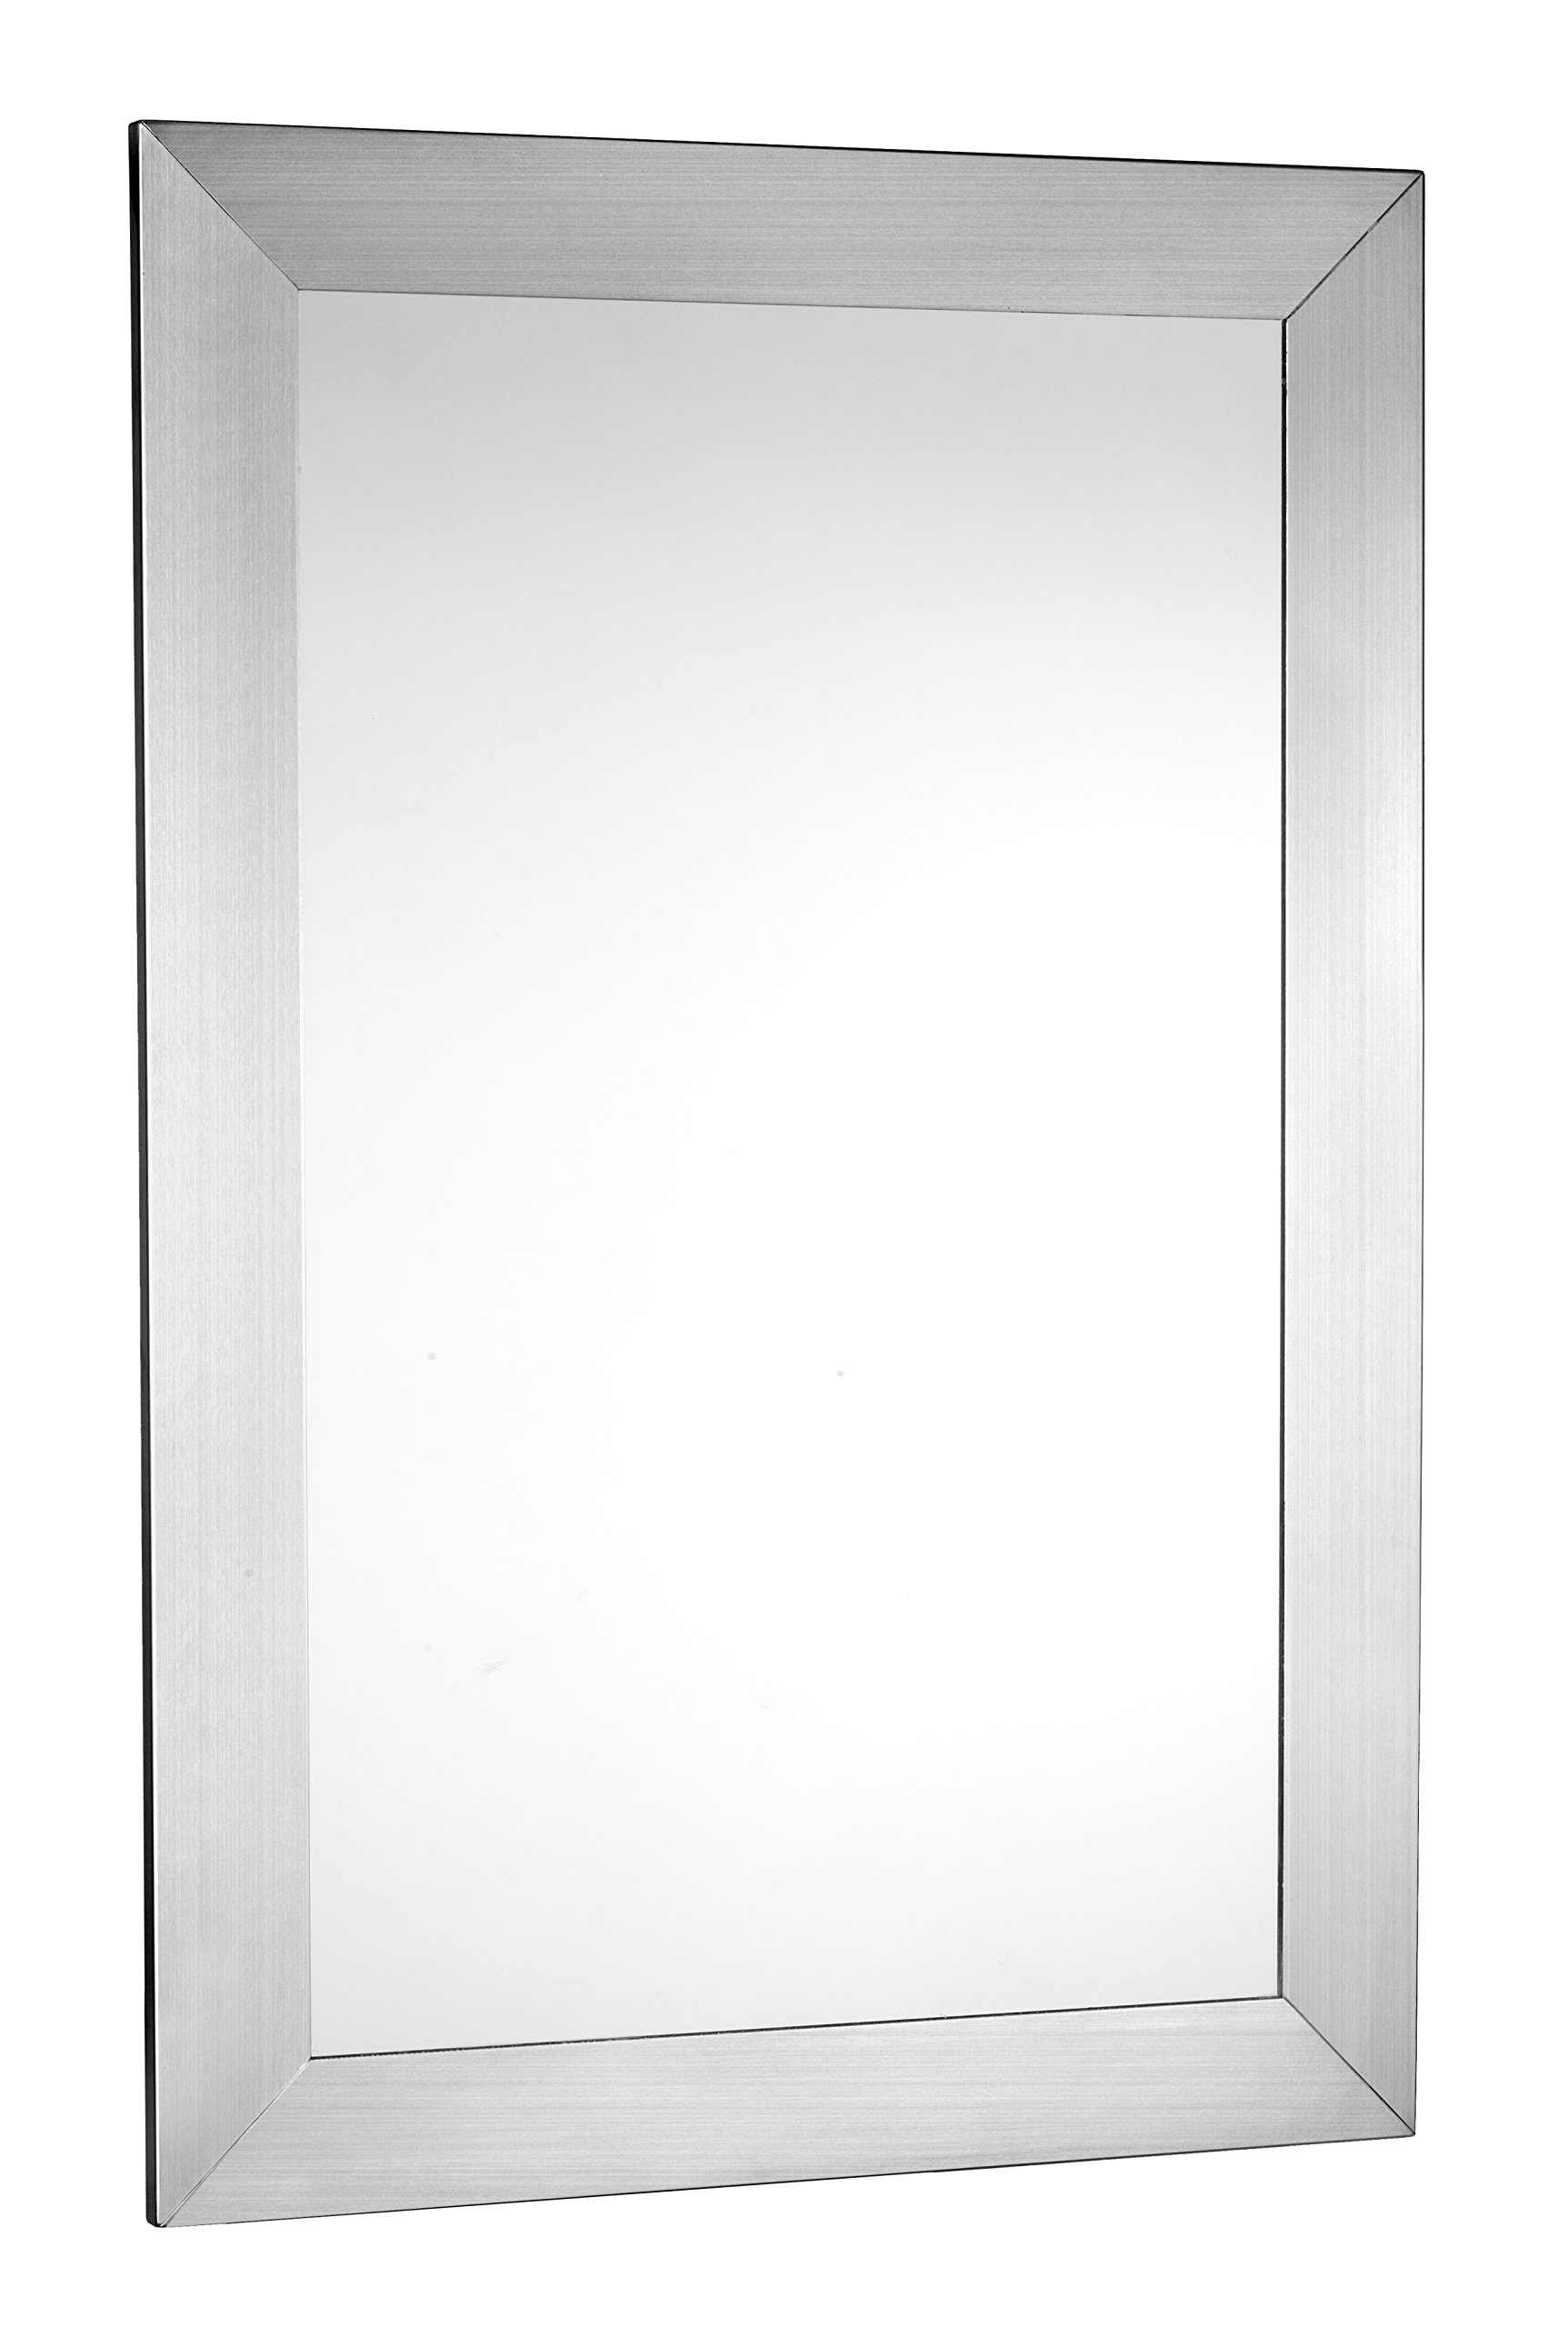 Croydex Parkgate Rectangular Mirror 36-Inch x 24-Inch with Brushed Stainless Steel Frame and Hang N Lock Fitting System